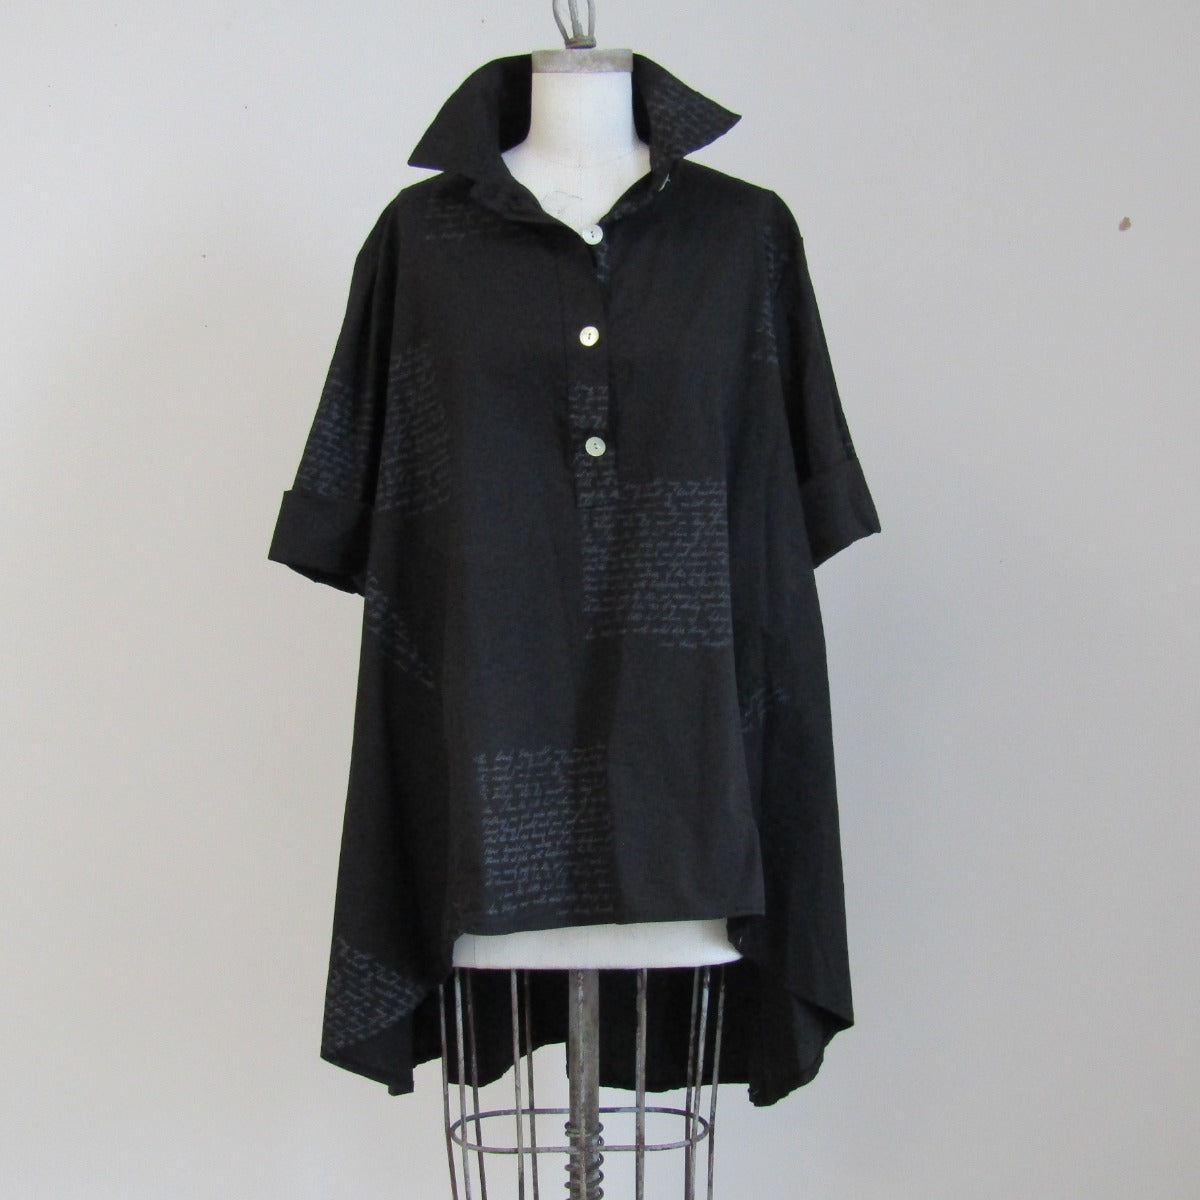 Little black Trench Shirt - Cross PFTP